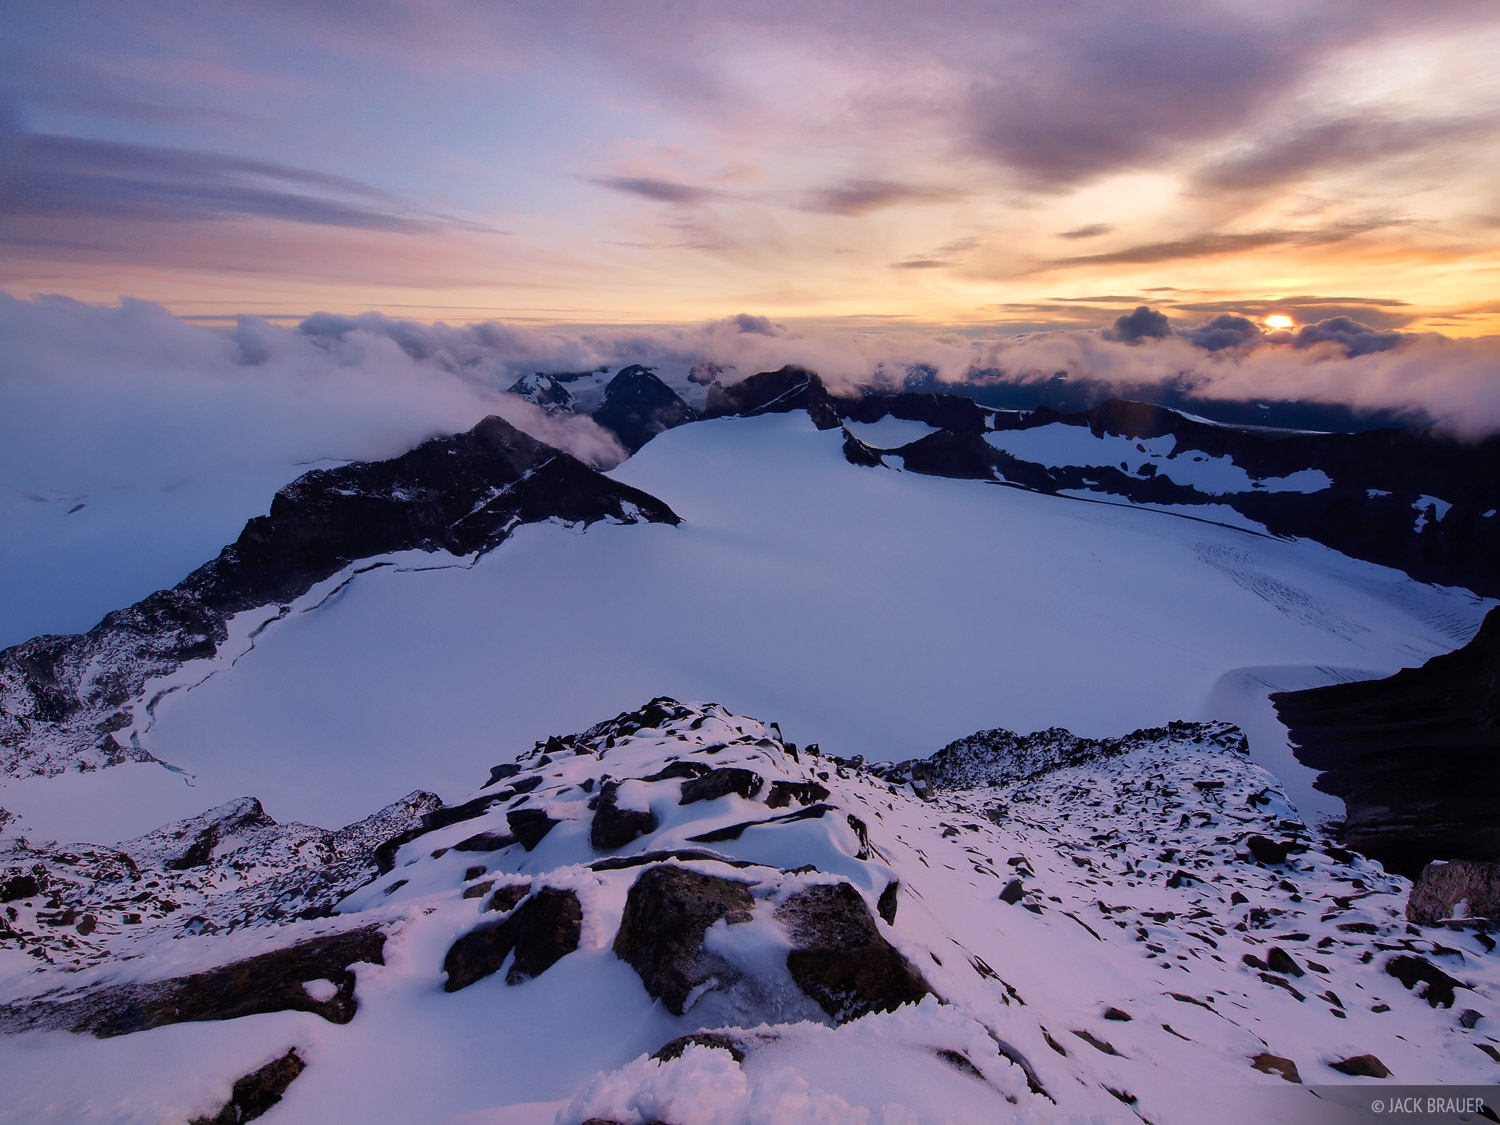 Storm clouds lifted just in time for me to capture this dramatic sunset on the snowy summit of Galdhøpiggen, the tallest...